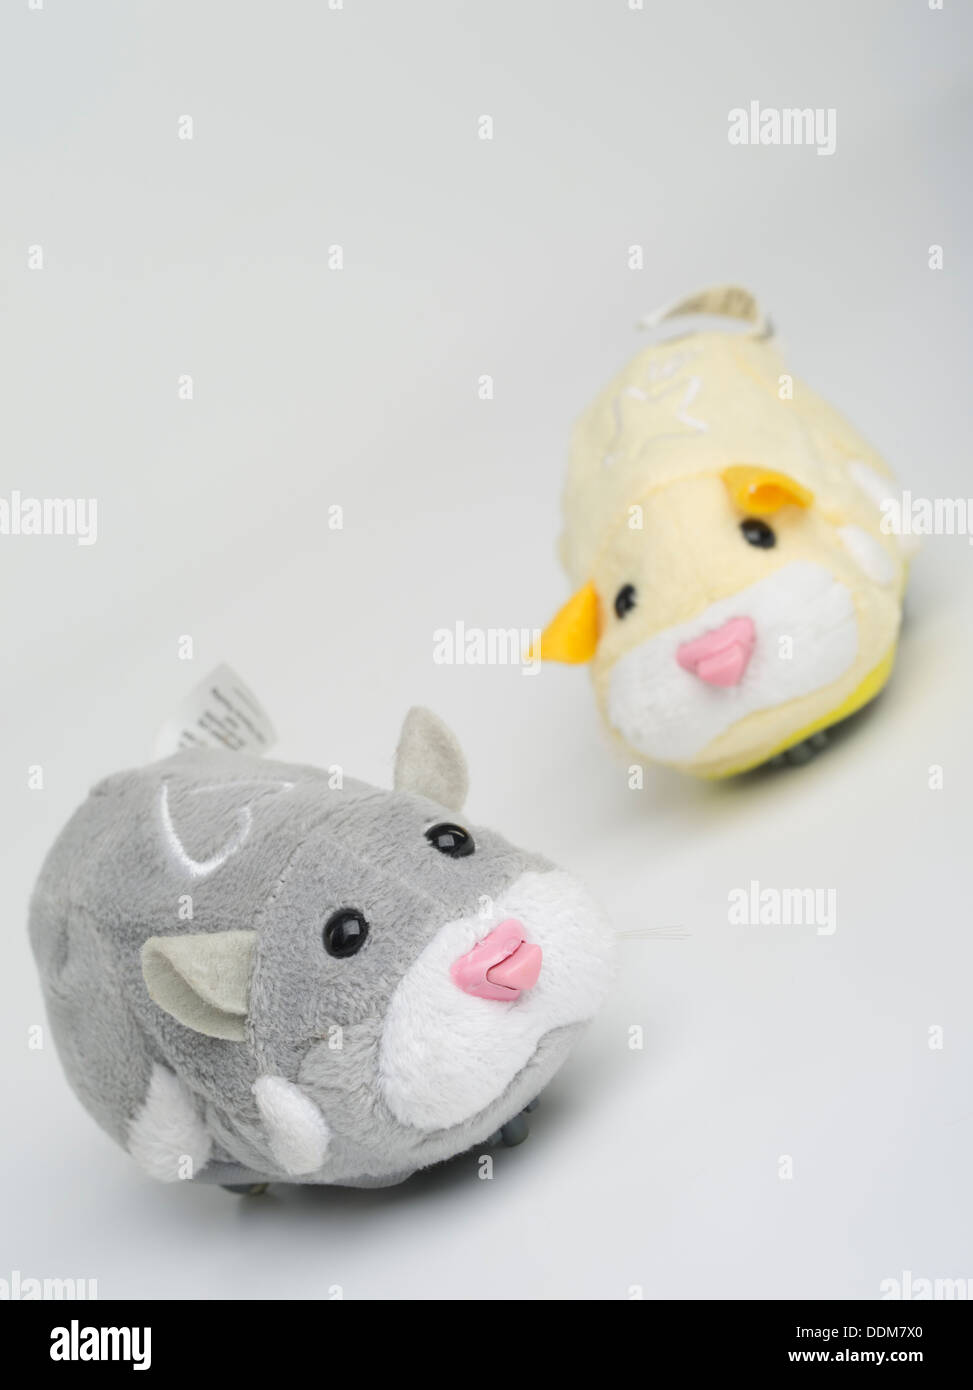 Zhu Zhu Pets by Cepia LLC Robotic hamster toys that were at Christmas 2009 craze - Stock Image